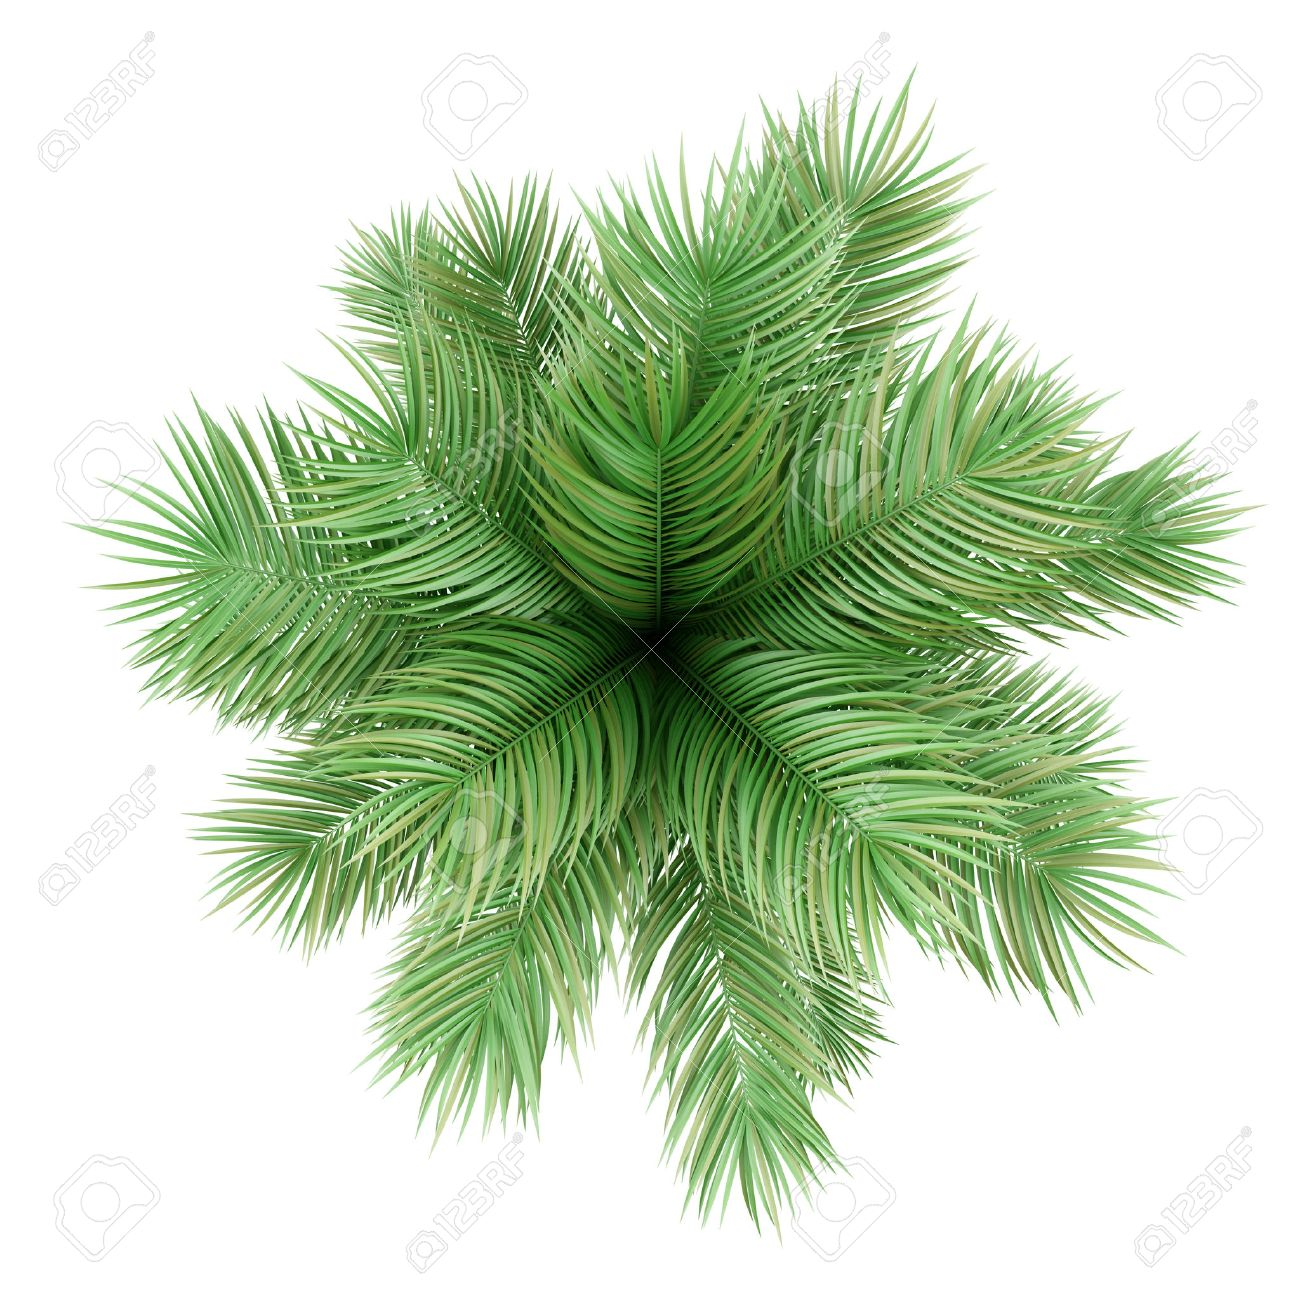 Top View Of Potted Palm Tree Isolated On White Background Stock ... for Palm Tree Top View Png  156eri